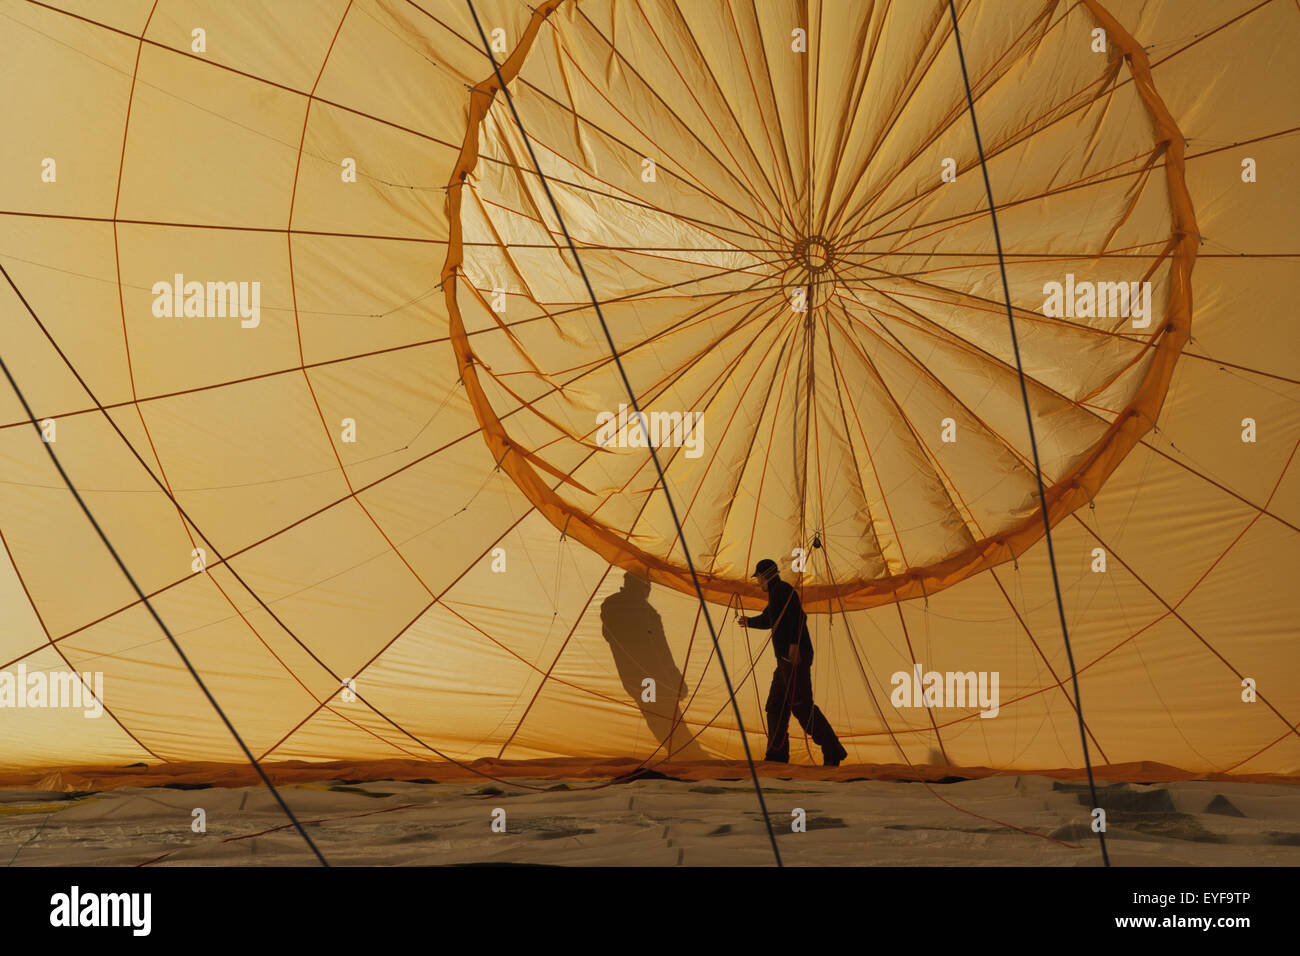 A man checks ropes inside a hot air balloon as it lies on the ground being inflated; Filzmoos, Austria - Stock Image